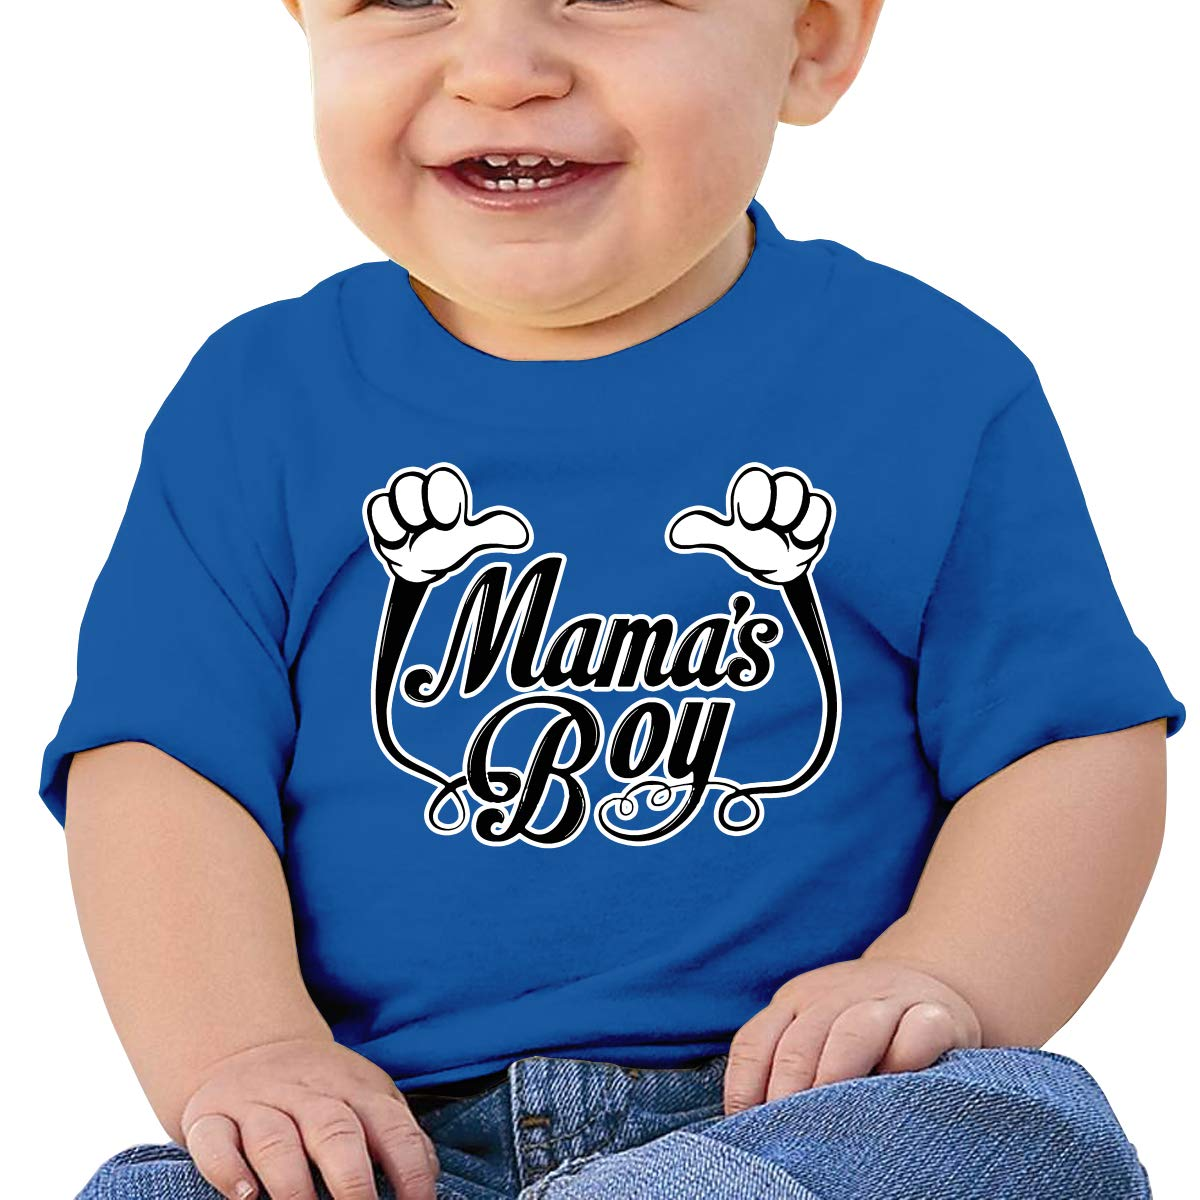 XHX403 Mamas Boy Infant Kids T Shirt Cotton Tee Toddler Baby 6-18M